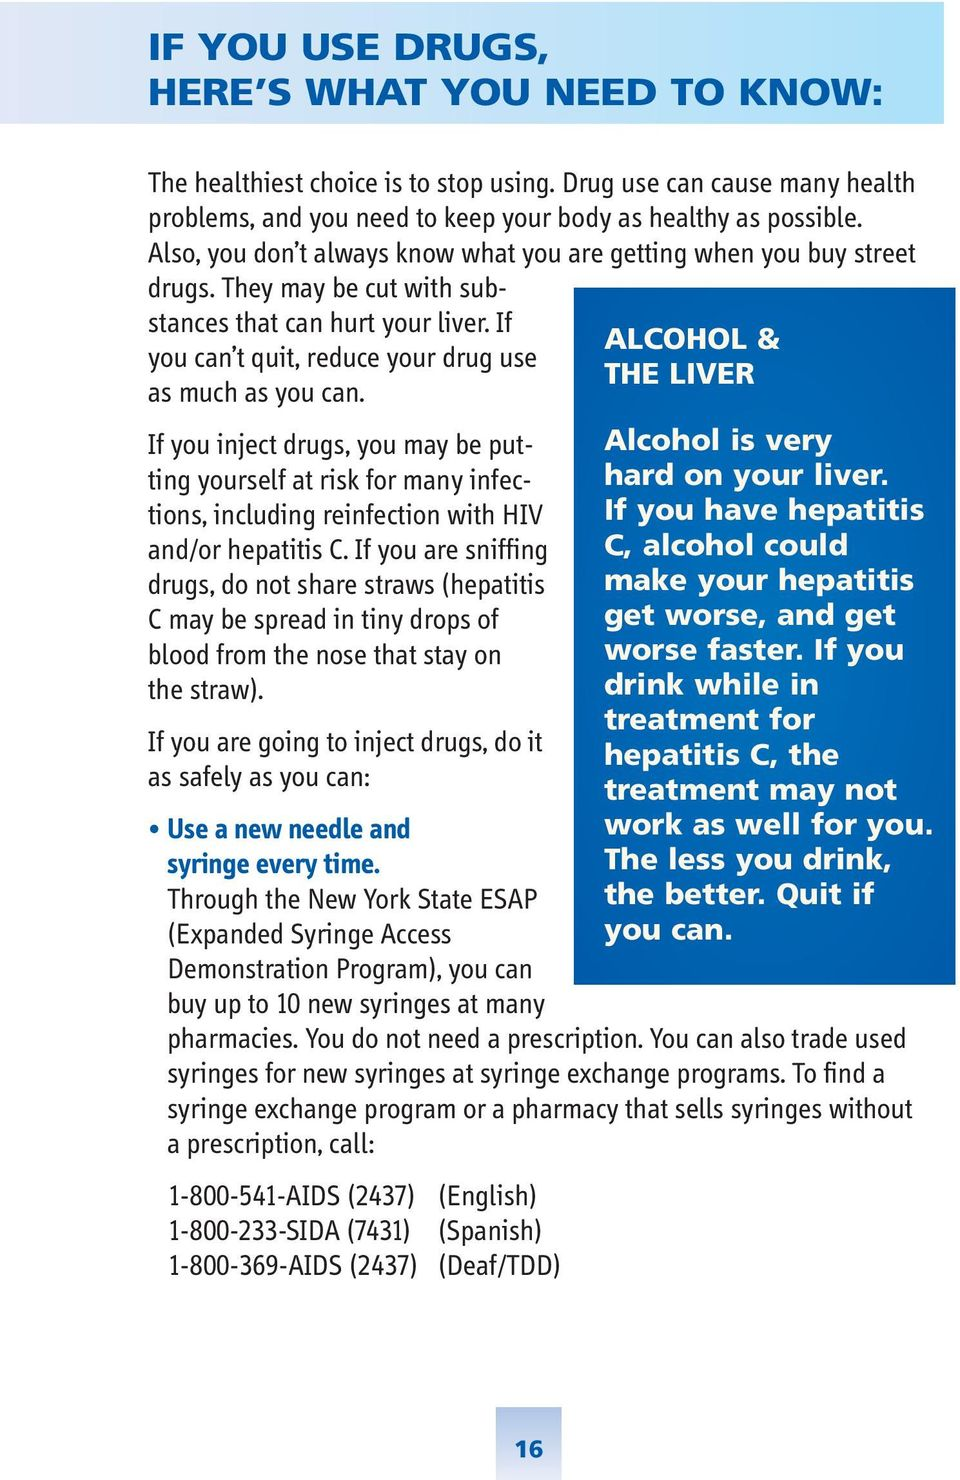 If ALCOHOL & you can t quit, reduce your drug use THE LIVER as much as you can. If you inject drugs, you may be put Alcohol is very ting yourself at risk for many infec hard on your liver.